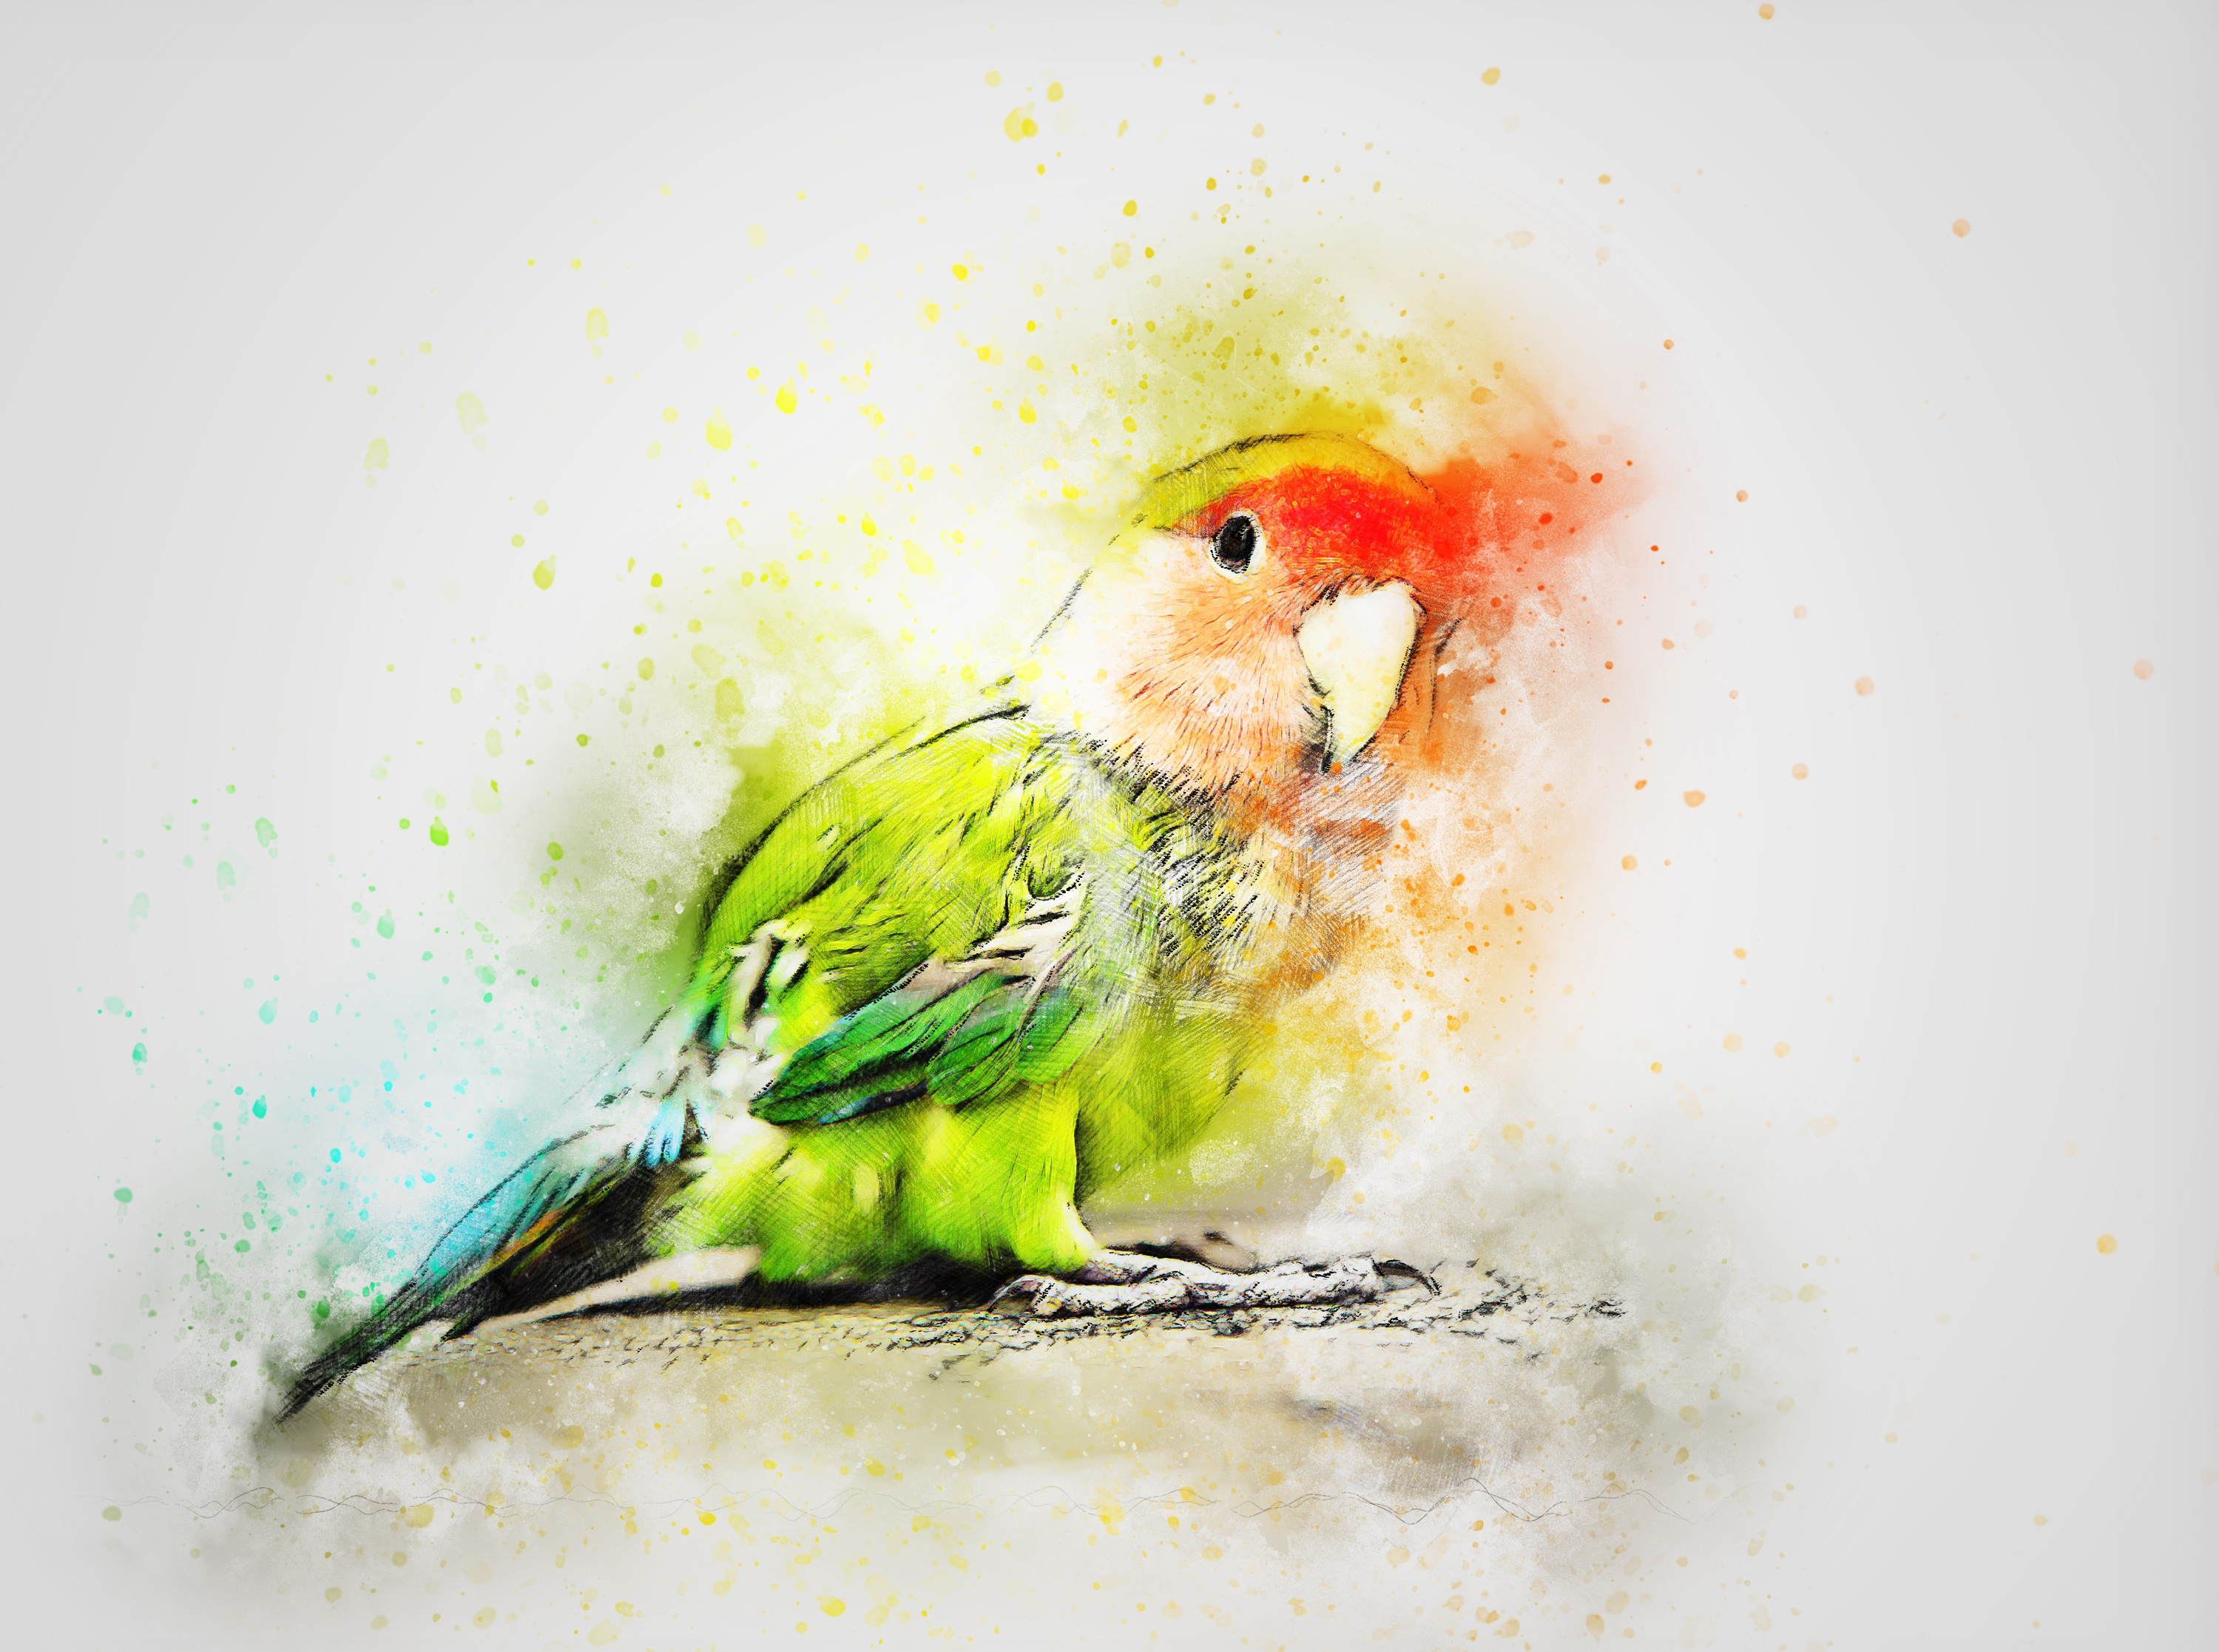 Parrot Art Full HD Wallpaper and Background Image | 3000x2234 | ID ...